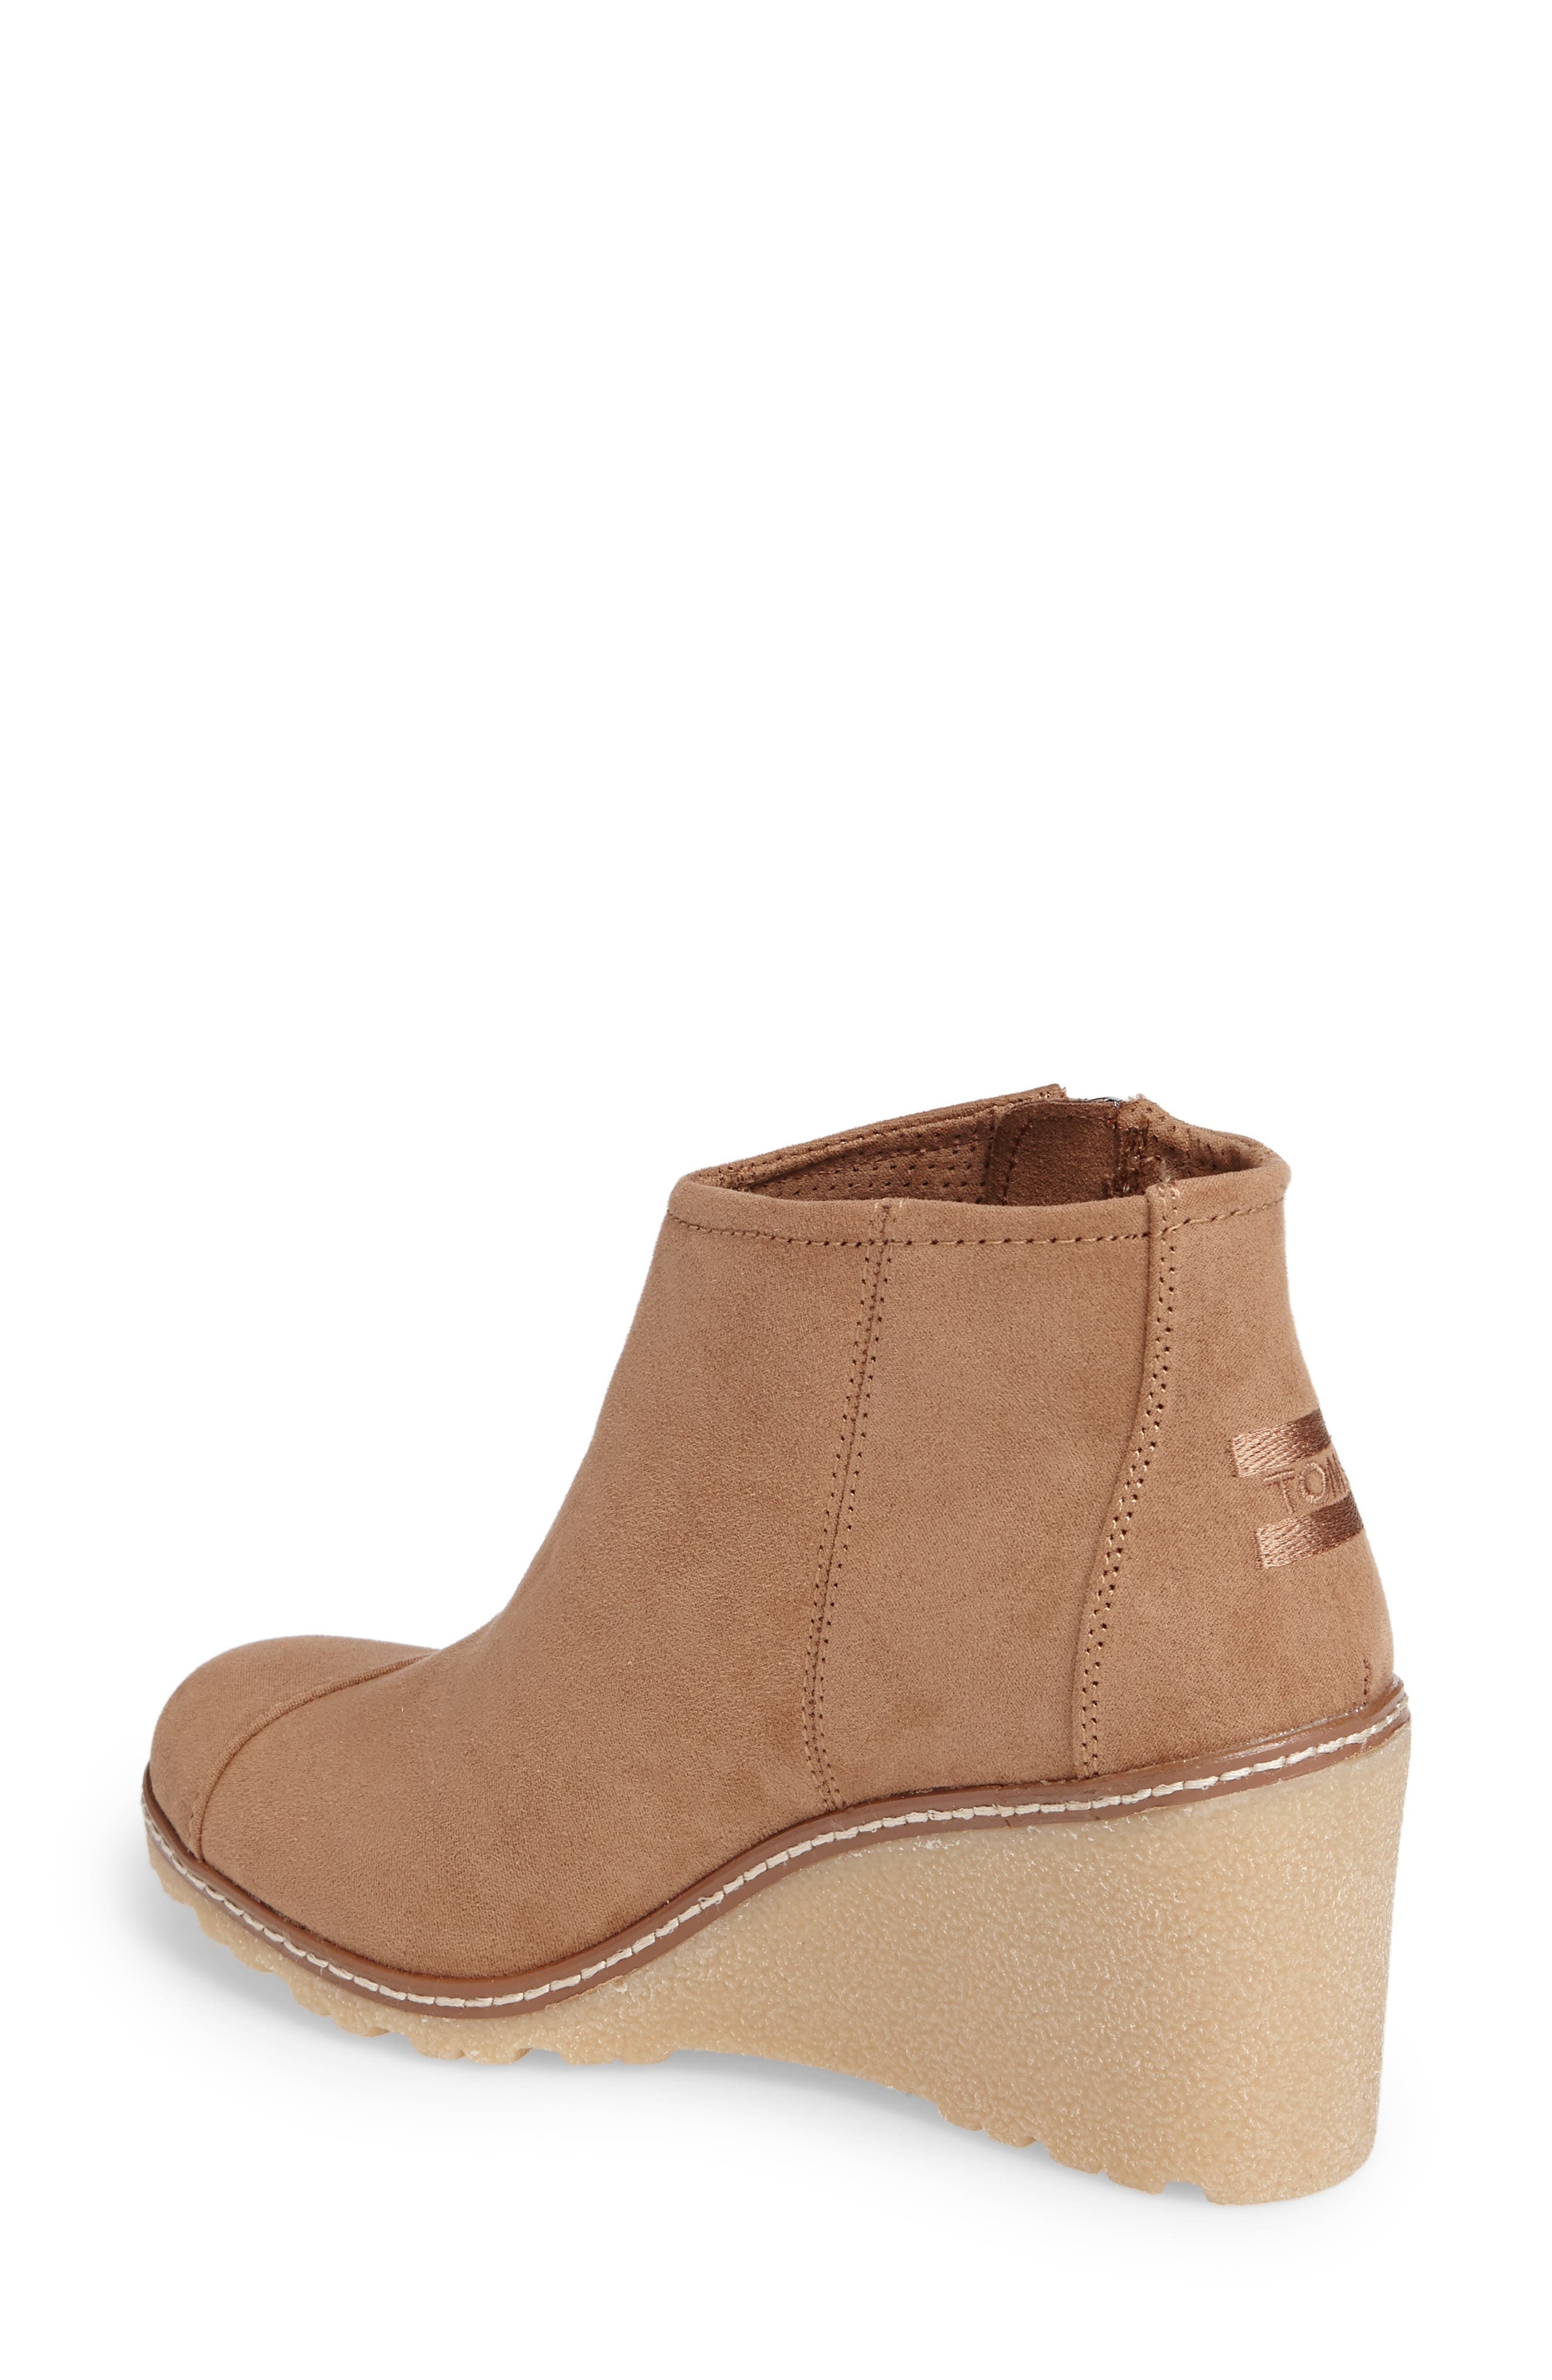 Avery Wedge Bootie,                             Alternate thumbnail 7, color,